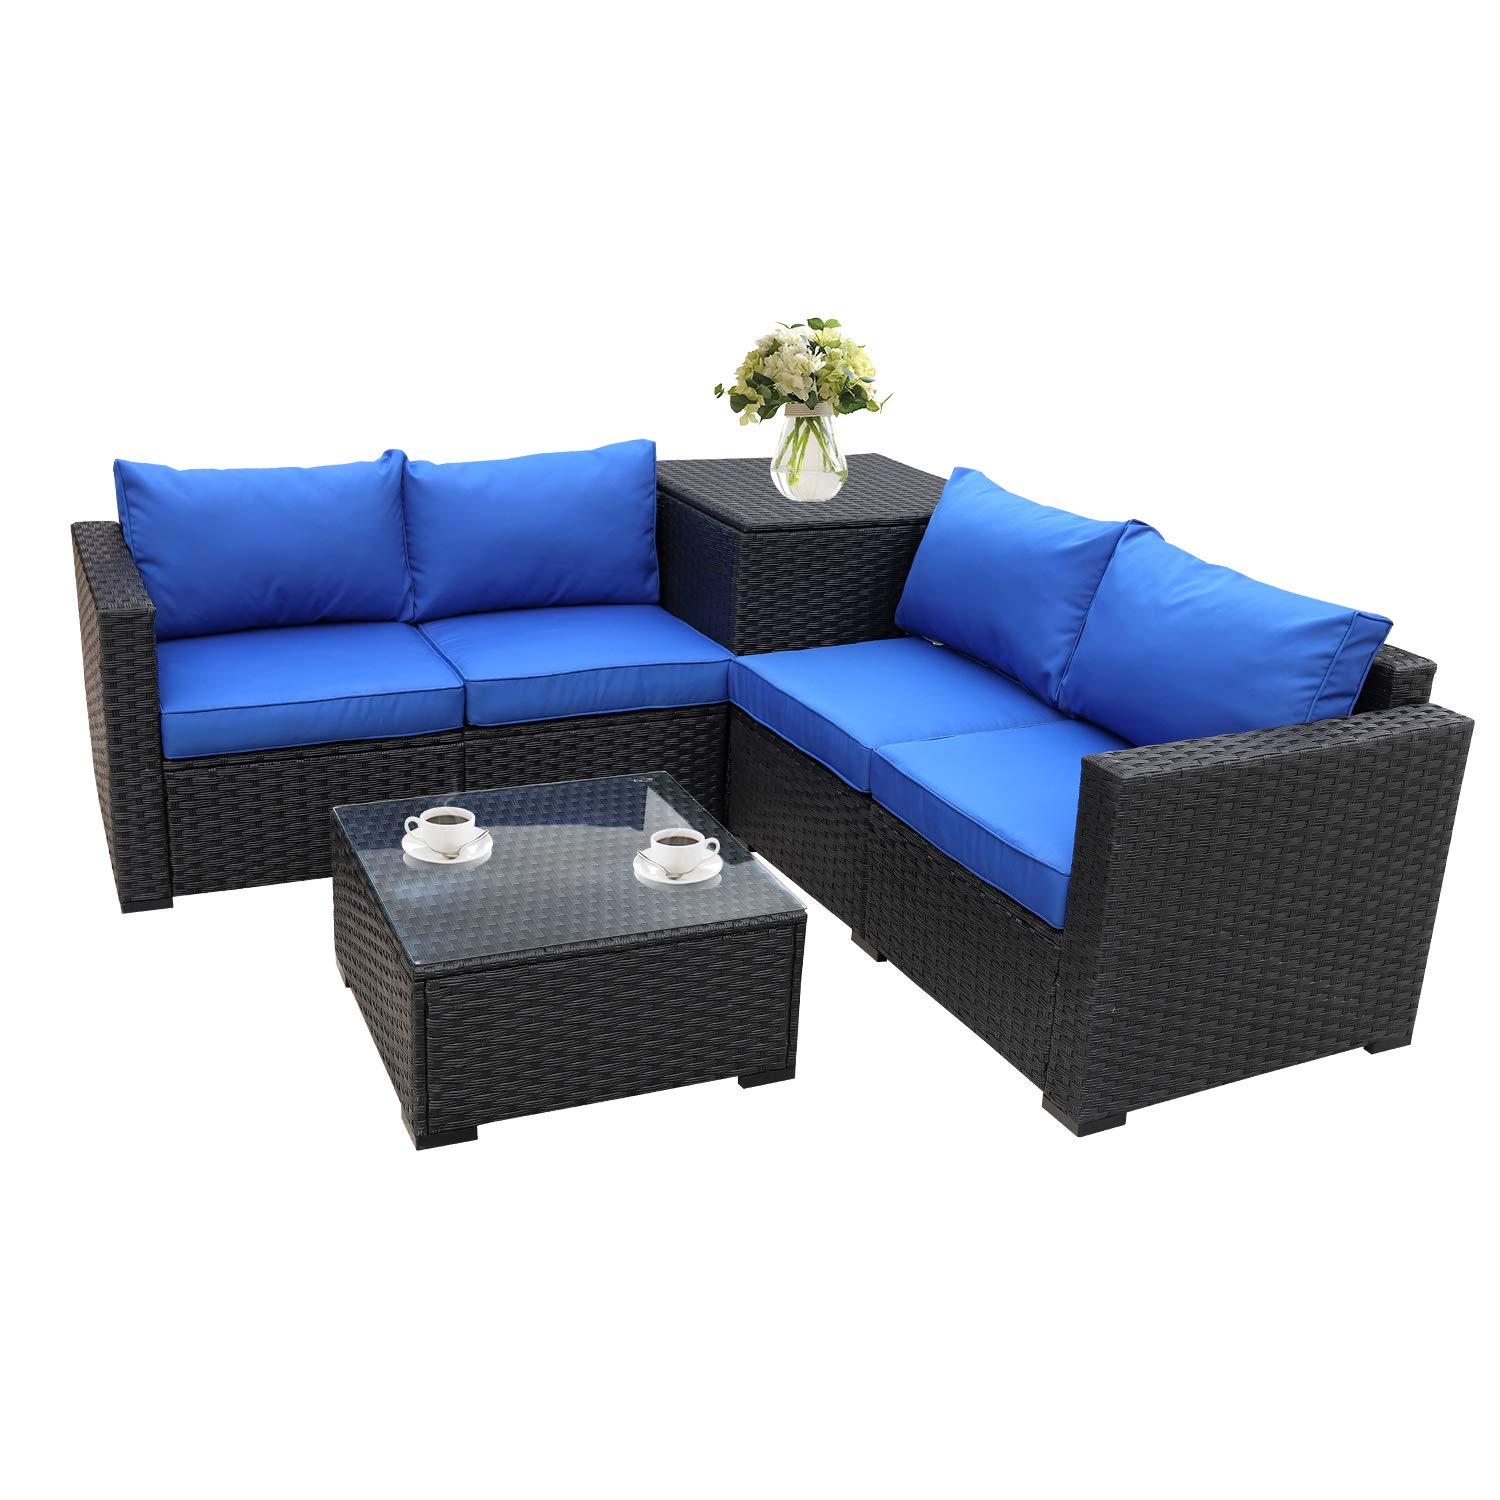 Patio Conversation Sets Reviews 2021 Ideal Outdoor Seating Sets